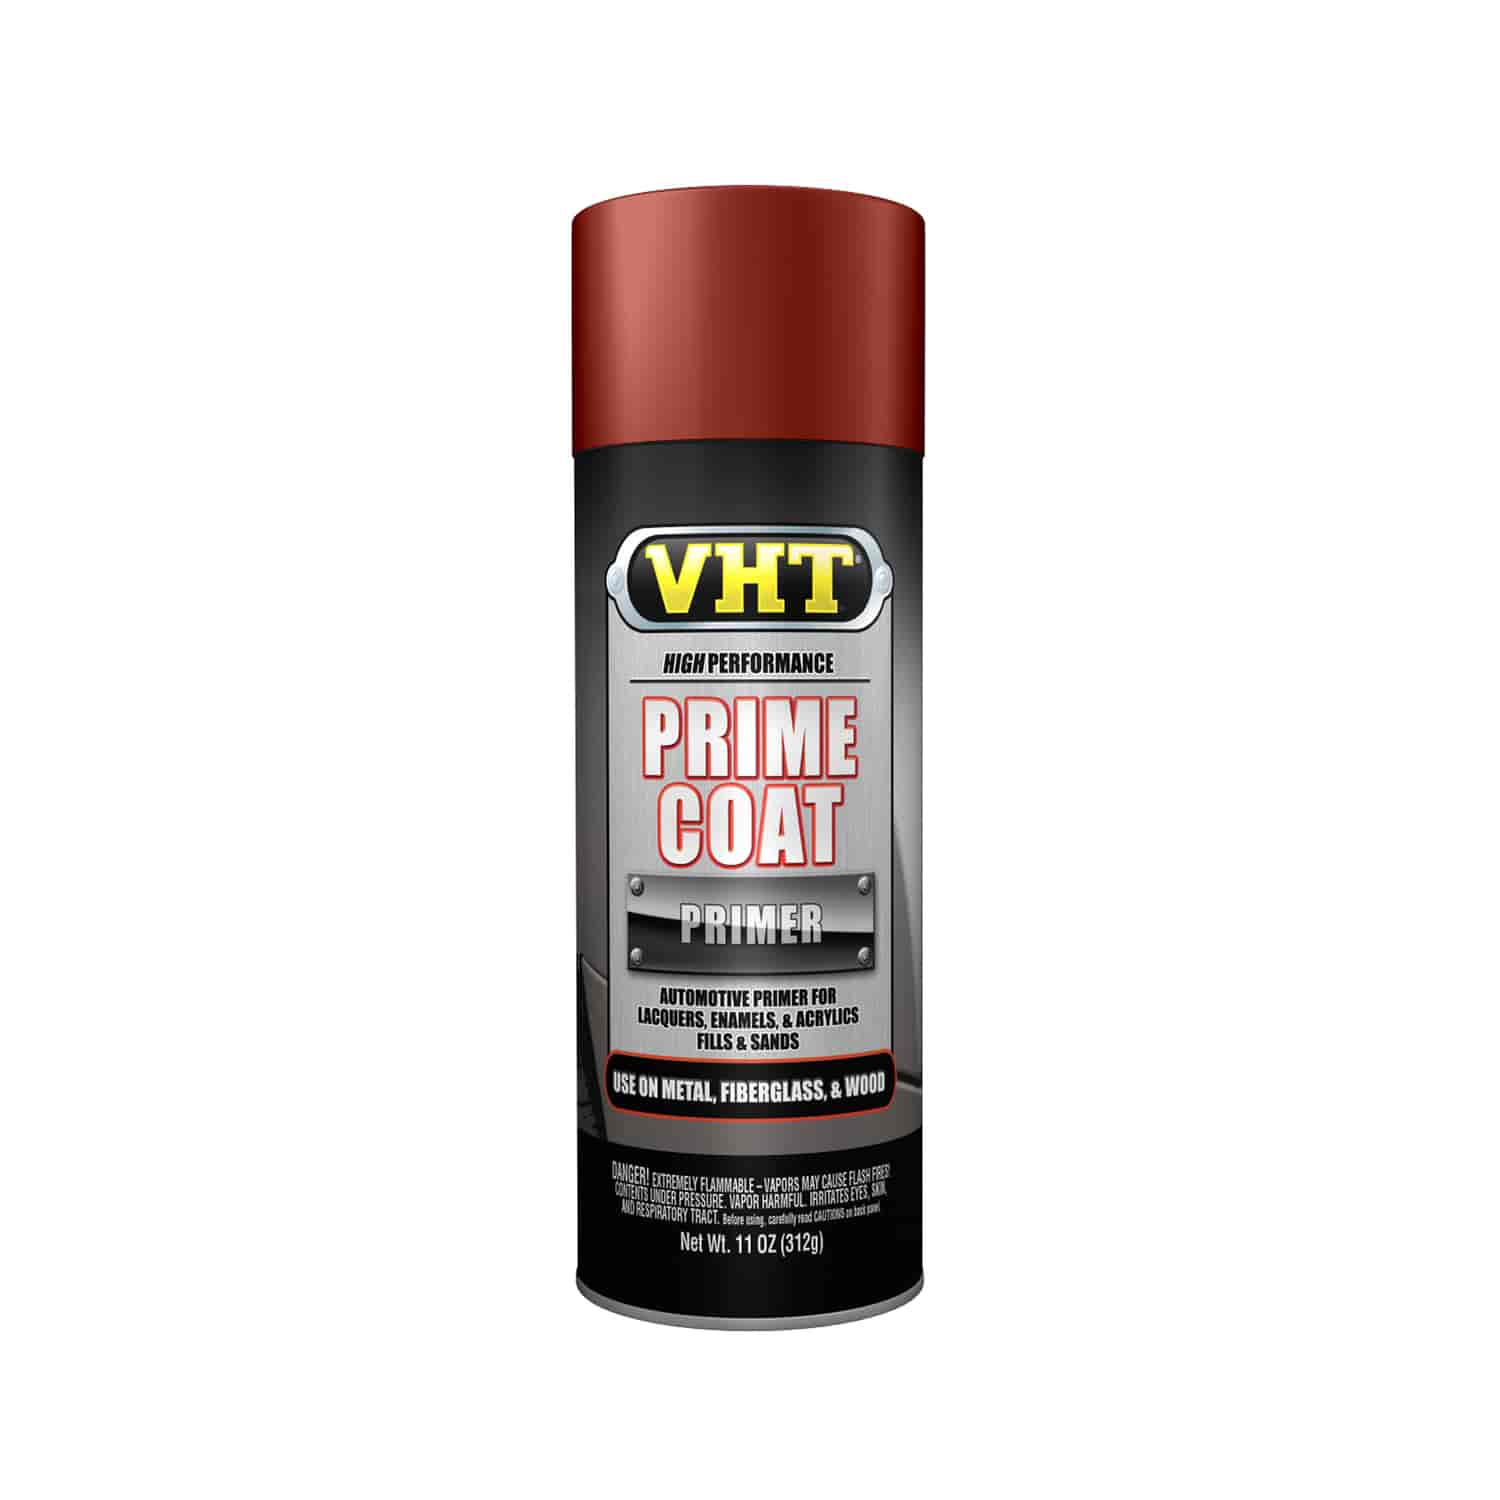 PJ1 SP303 - VHT Spray Primer